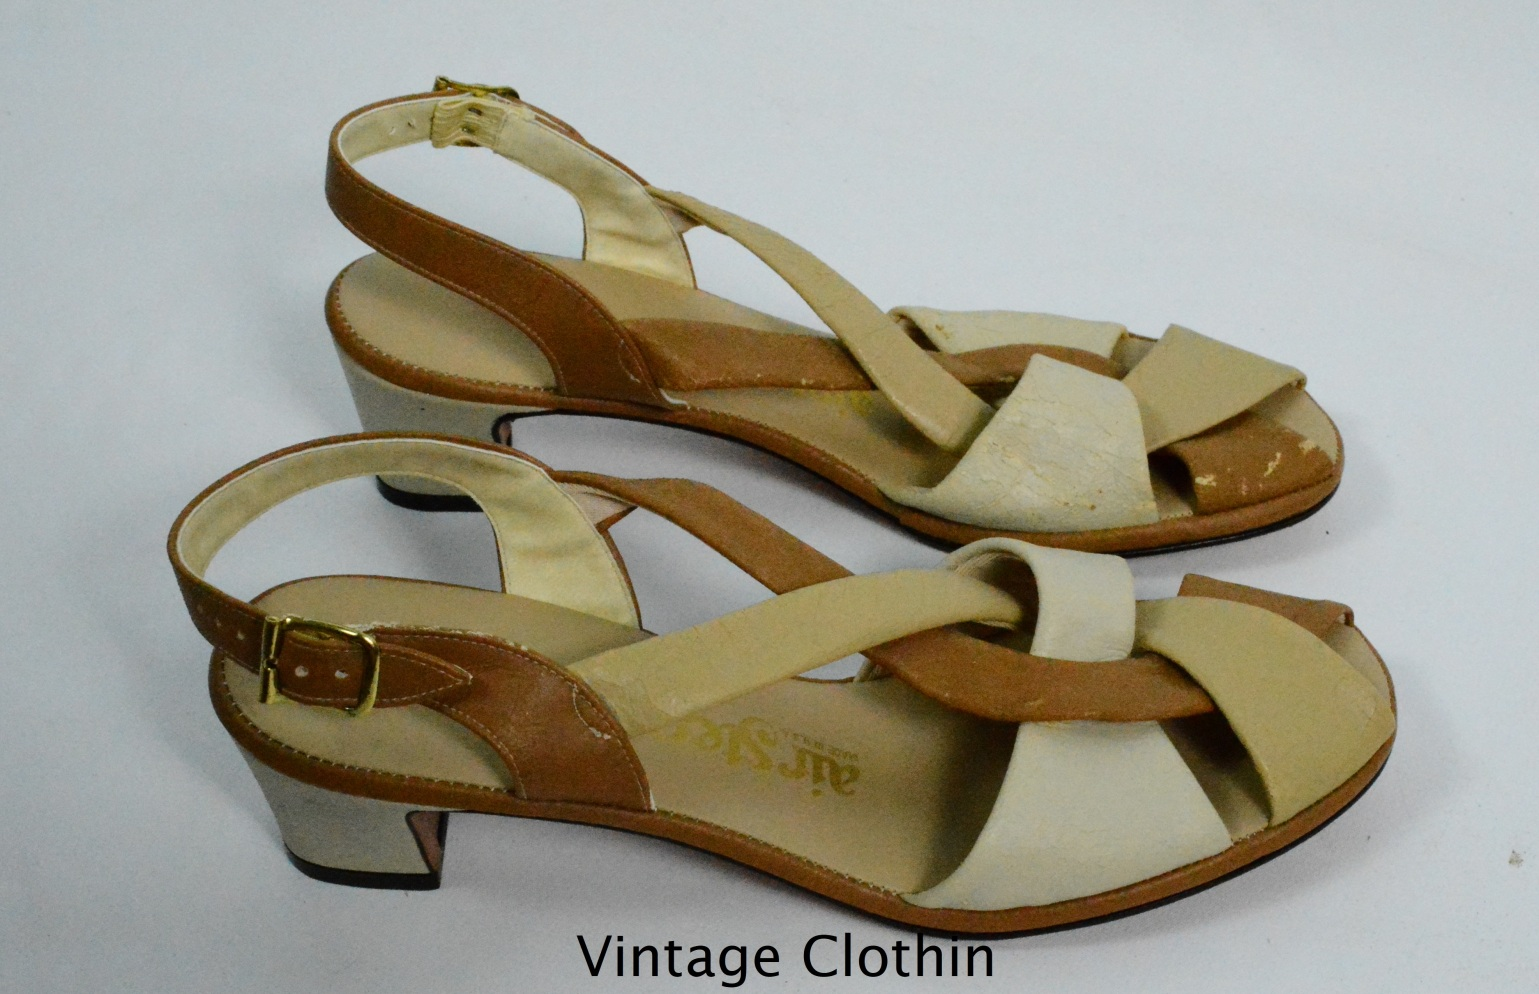 1980's Air Step Tan and Beige Sandals